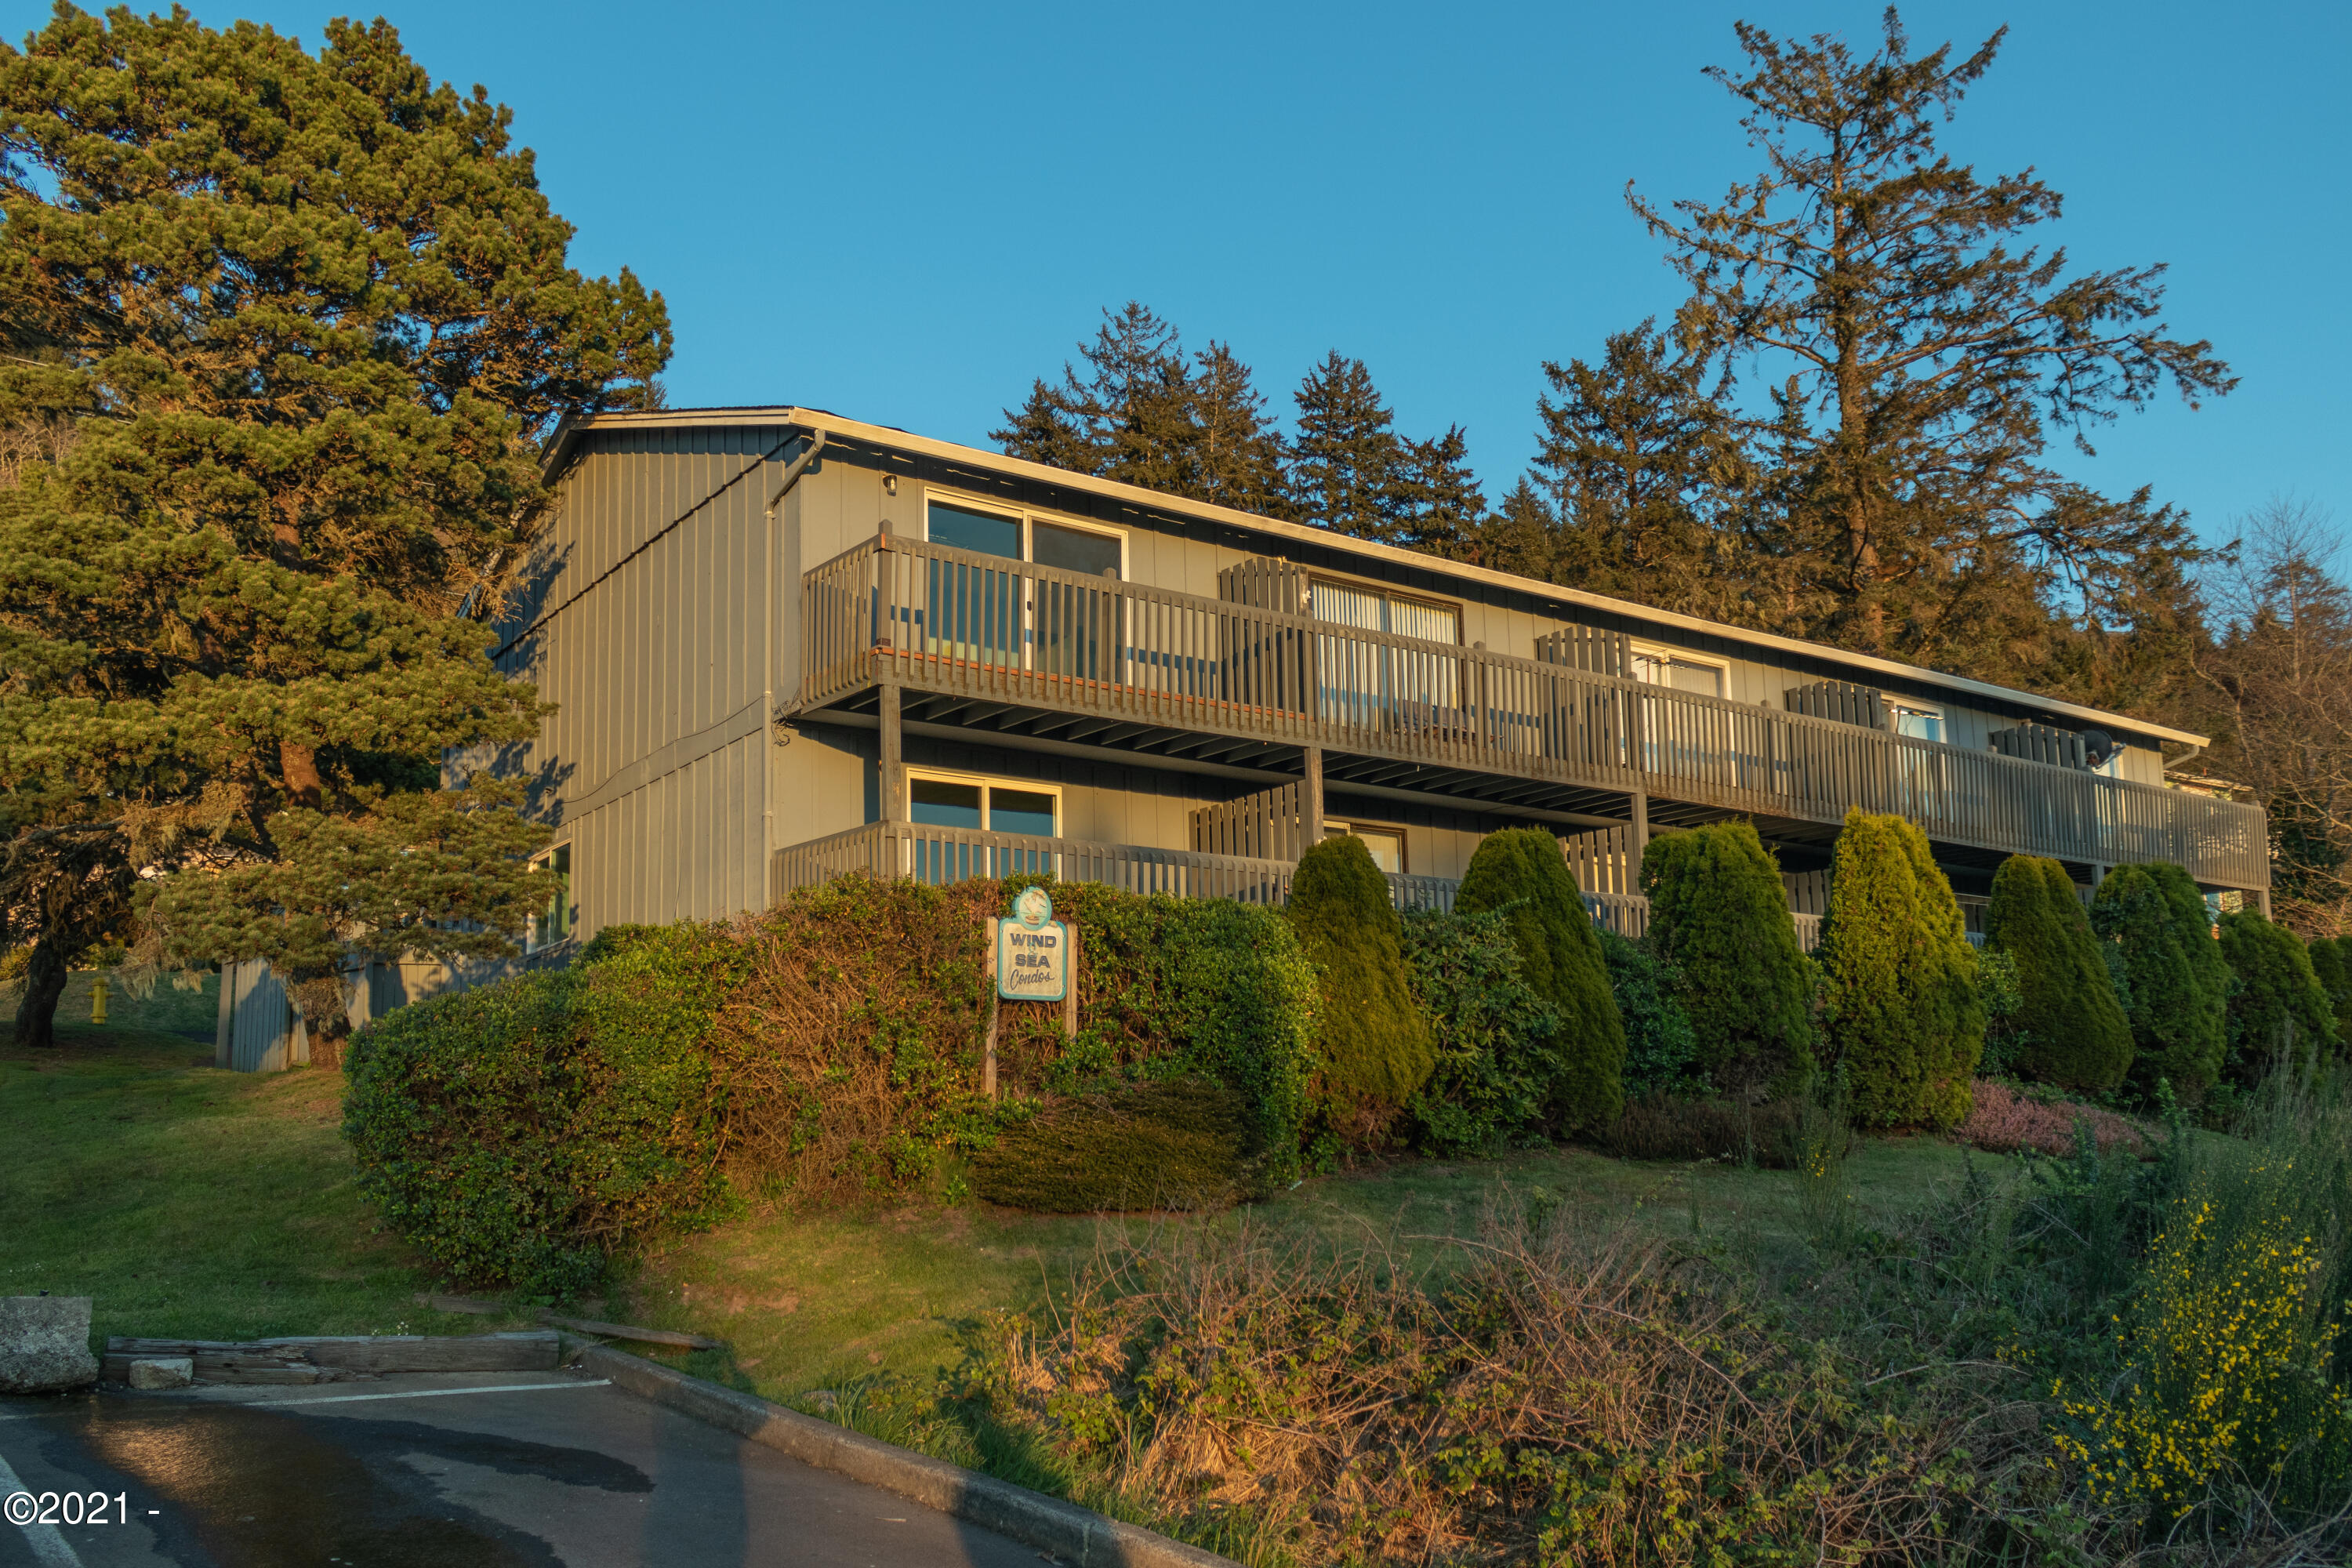 445 NE Williams Ave, #5, Depoe Bay, OR 97341 - Wind N' Sea condos